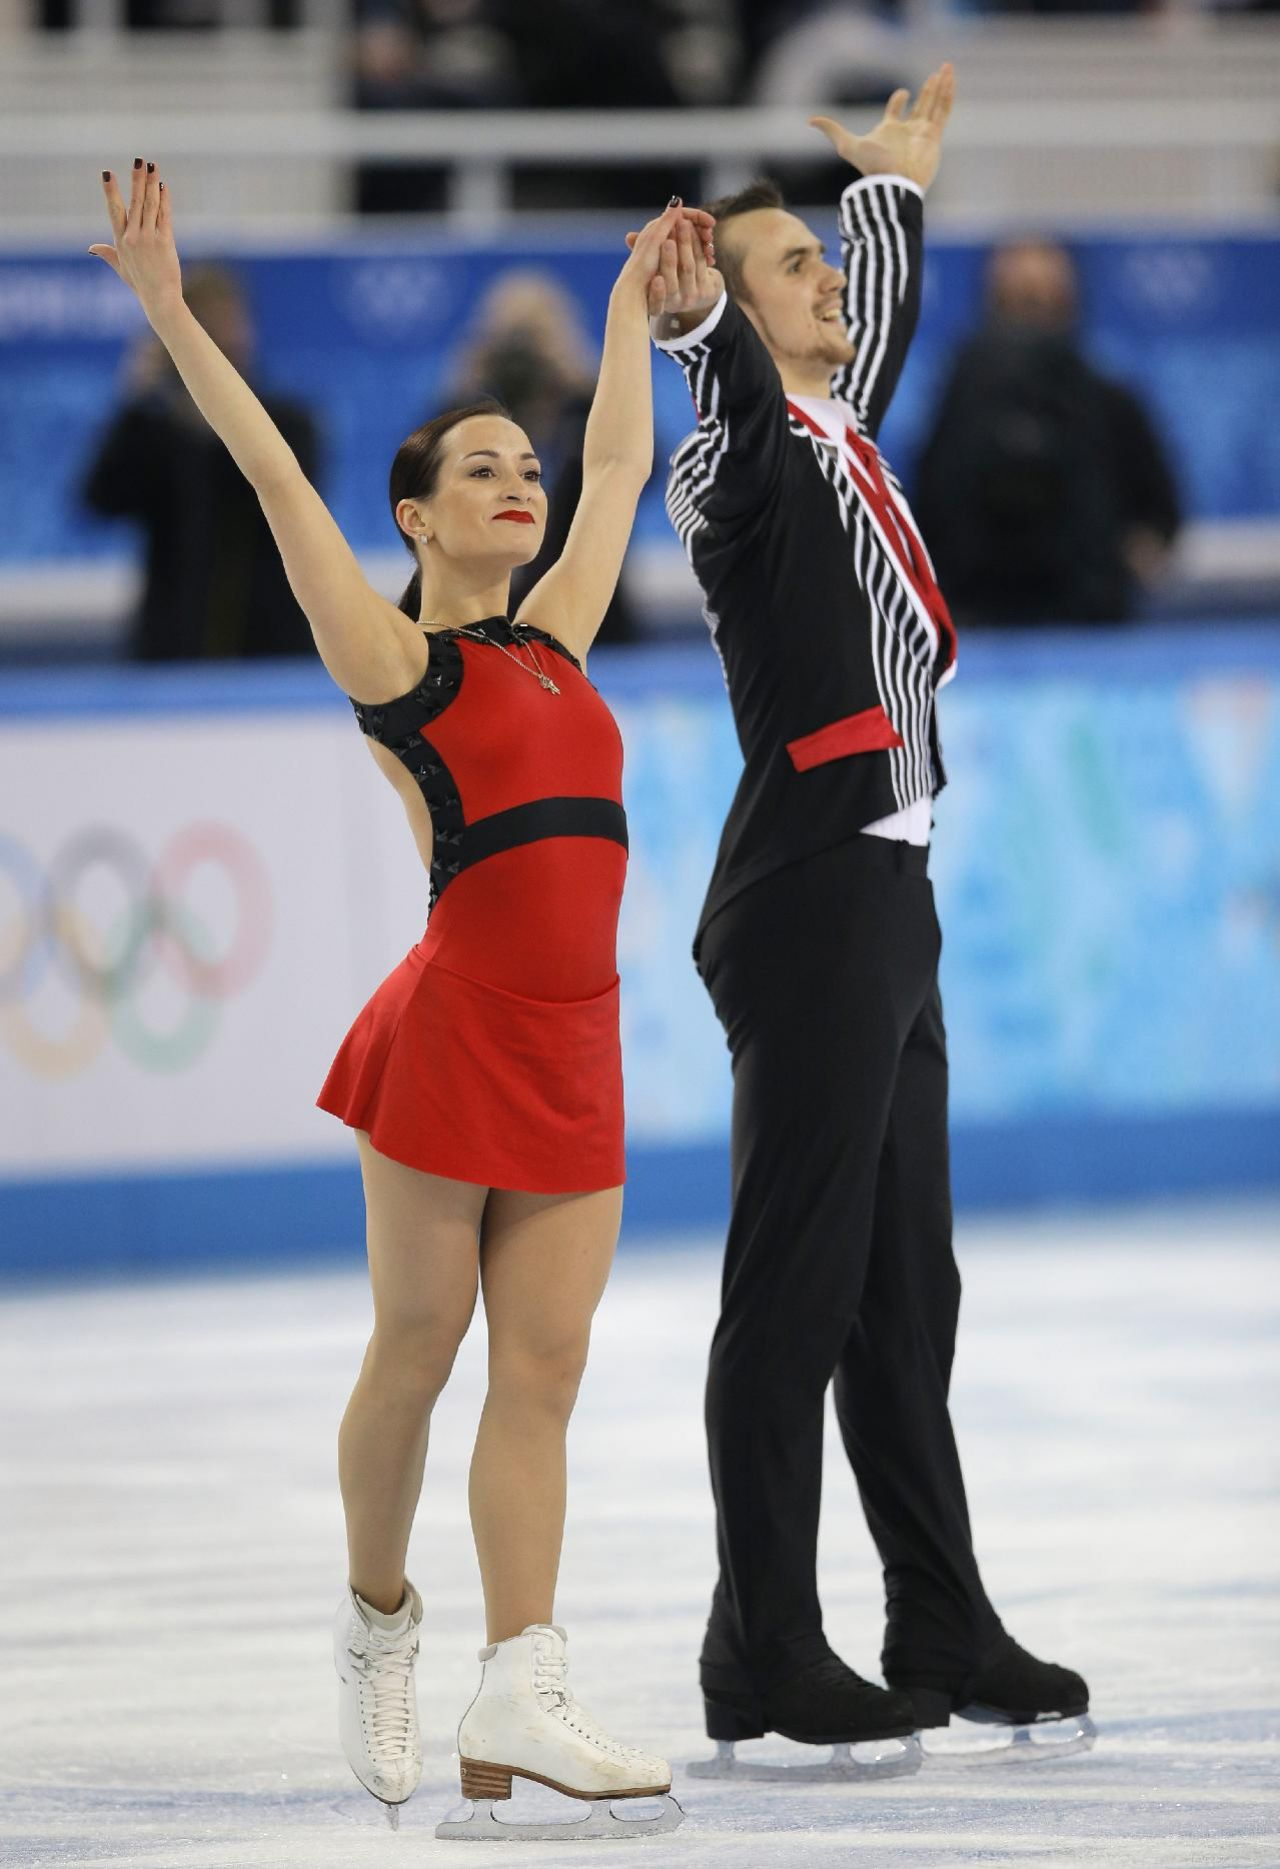 Ksenia Stolbova - Sochi 2014 Winter Olympics – Team Pairs Free Skating Program